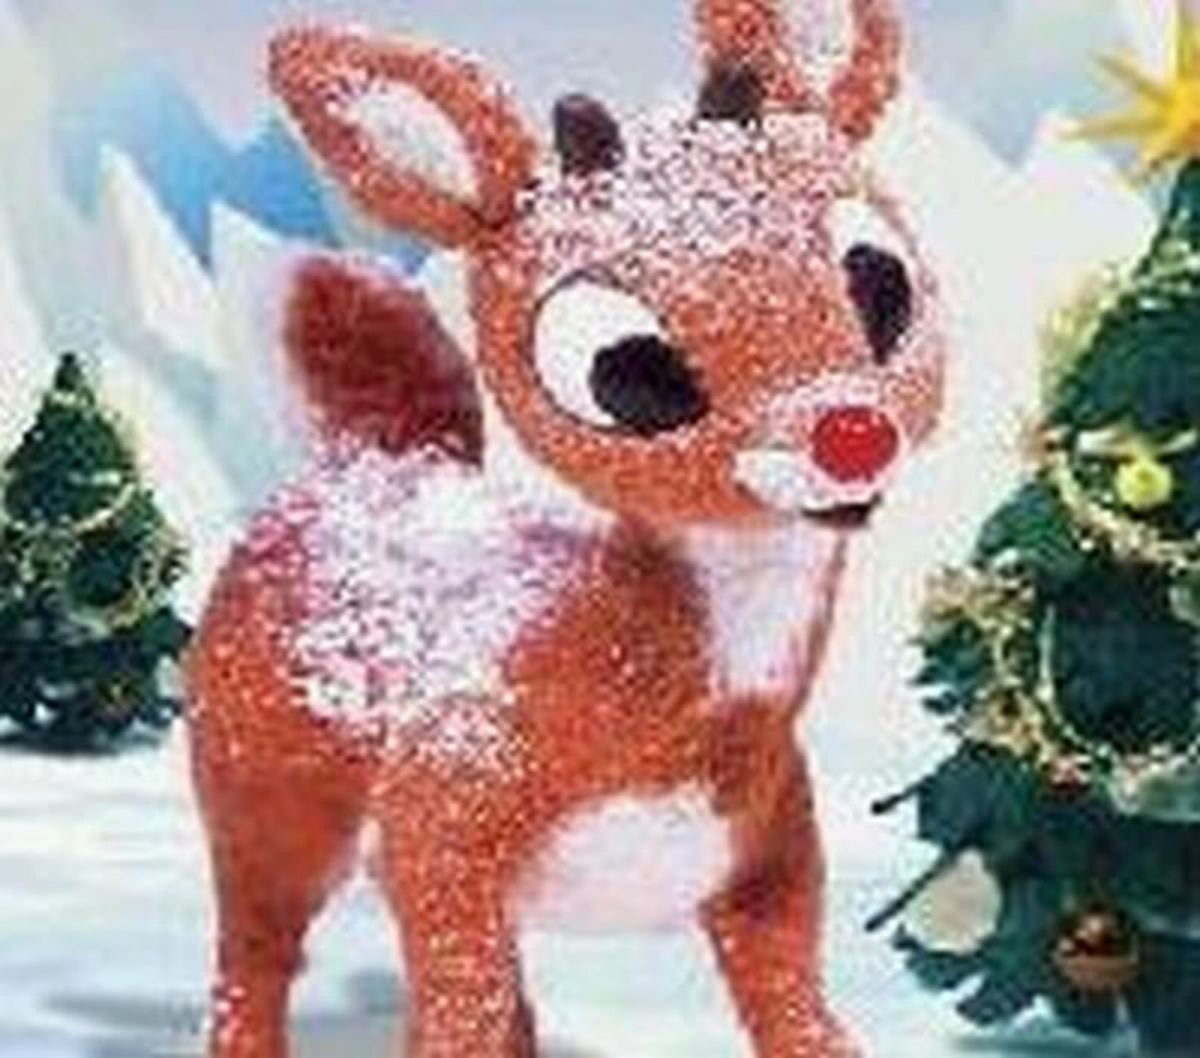 Real rudolph the red nosed reindeer flying - photo#27